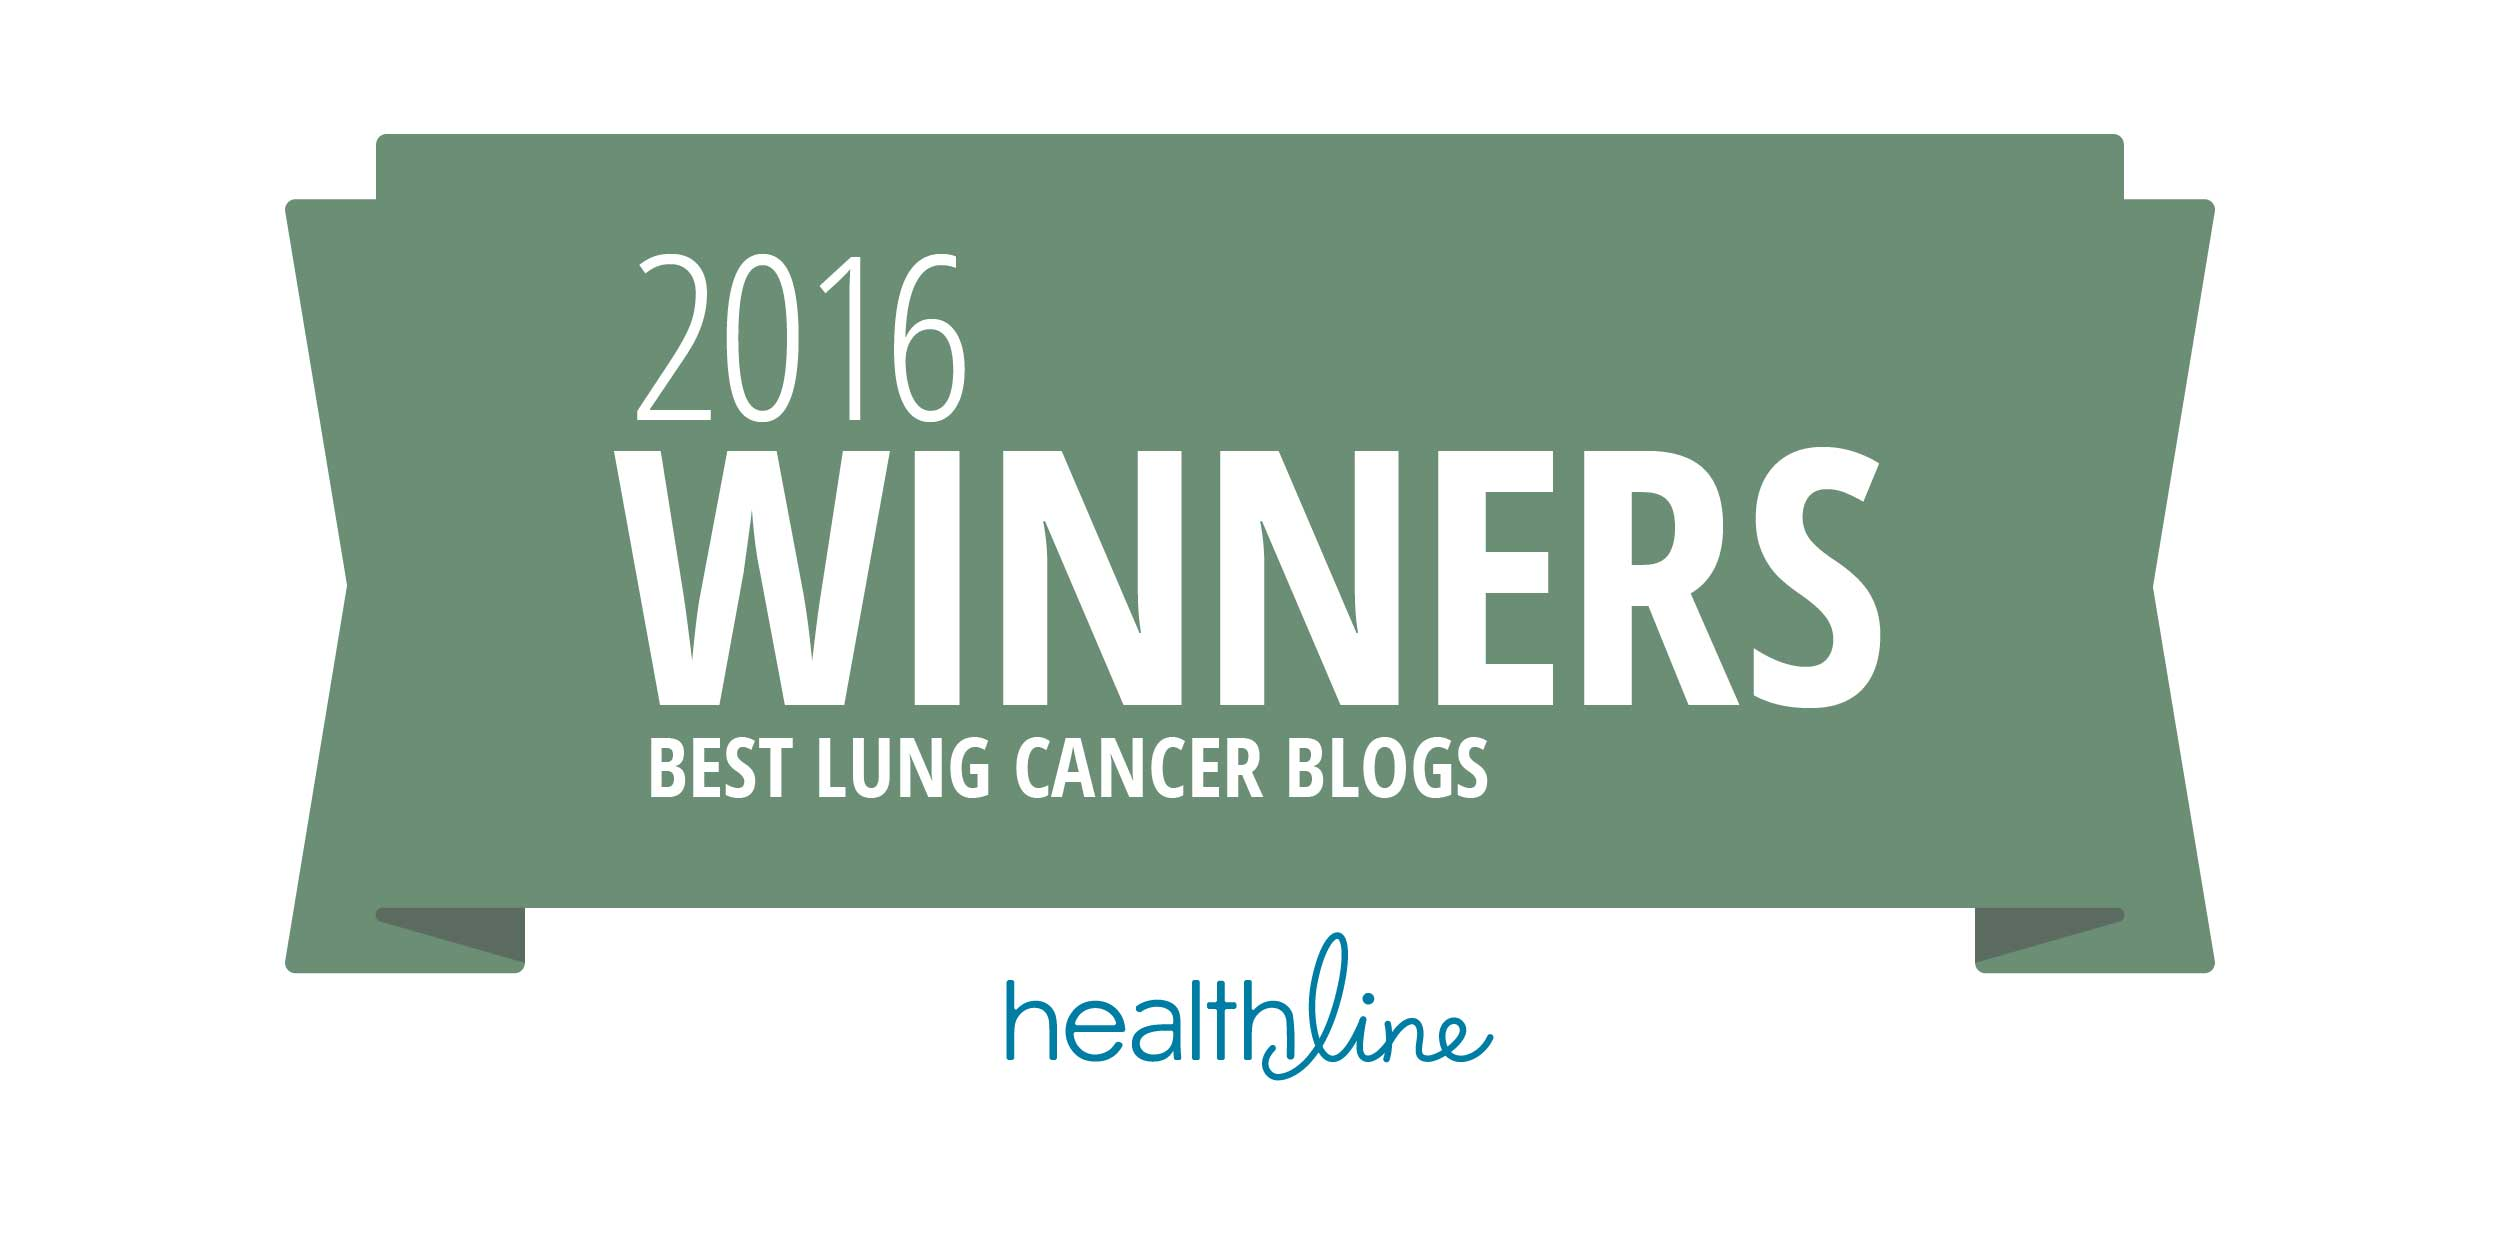 Best Lung Cancer Blogs of the Year